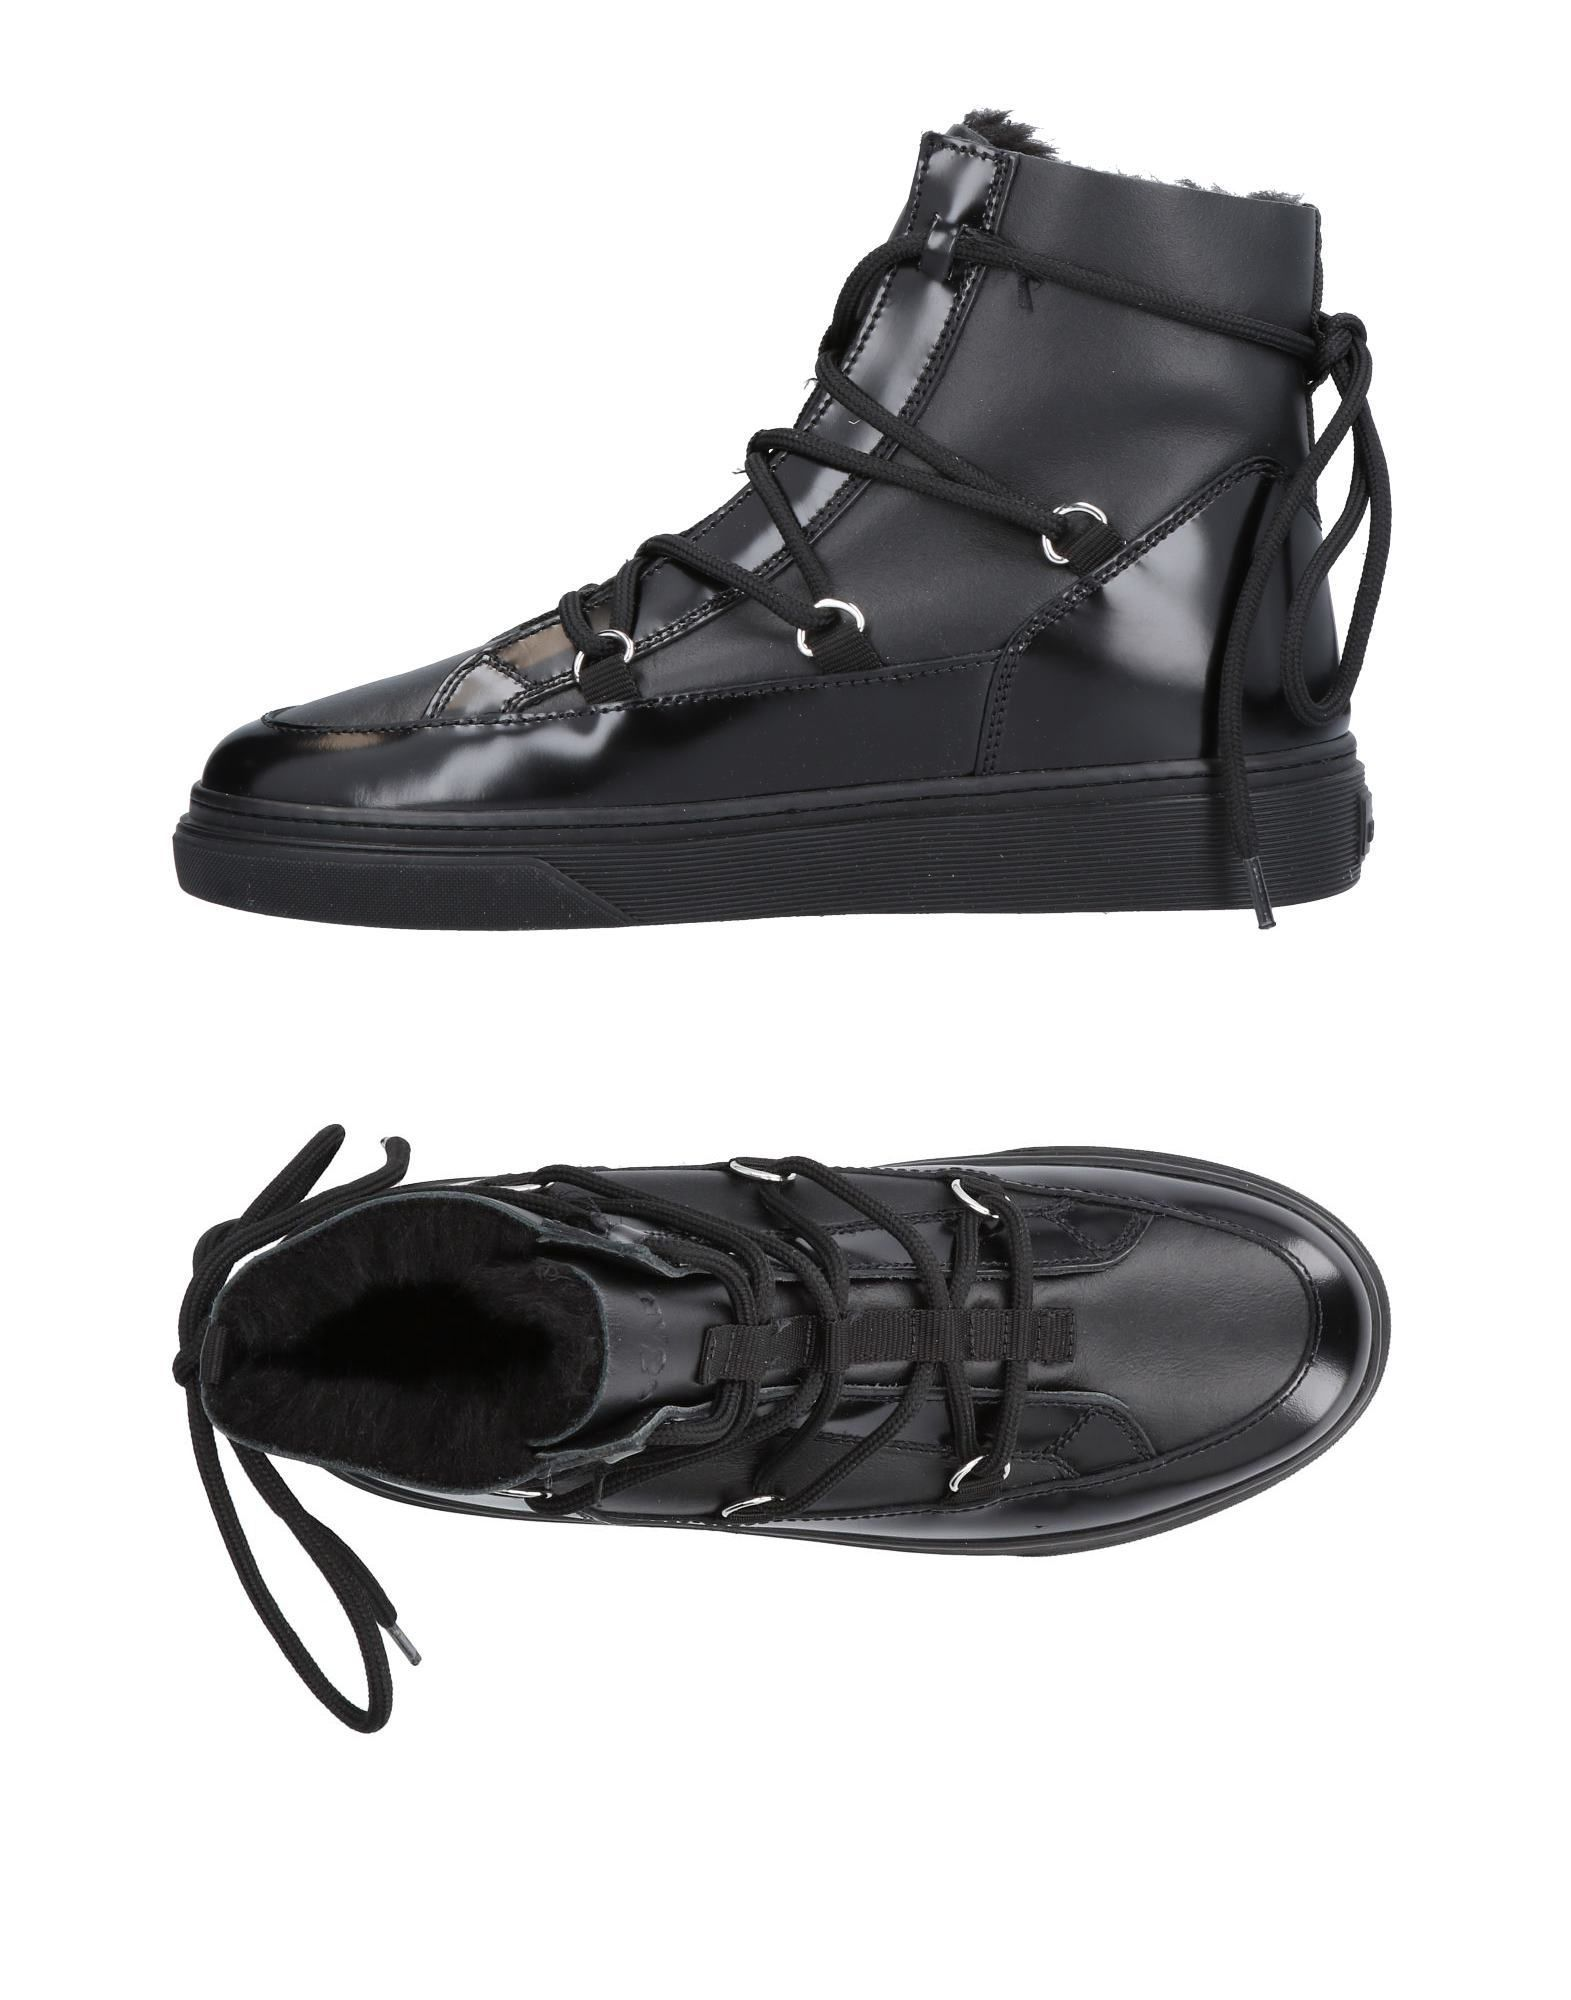 Hogan Black Leather Lace Up Boots